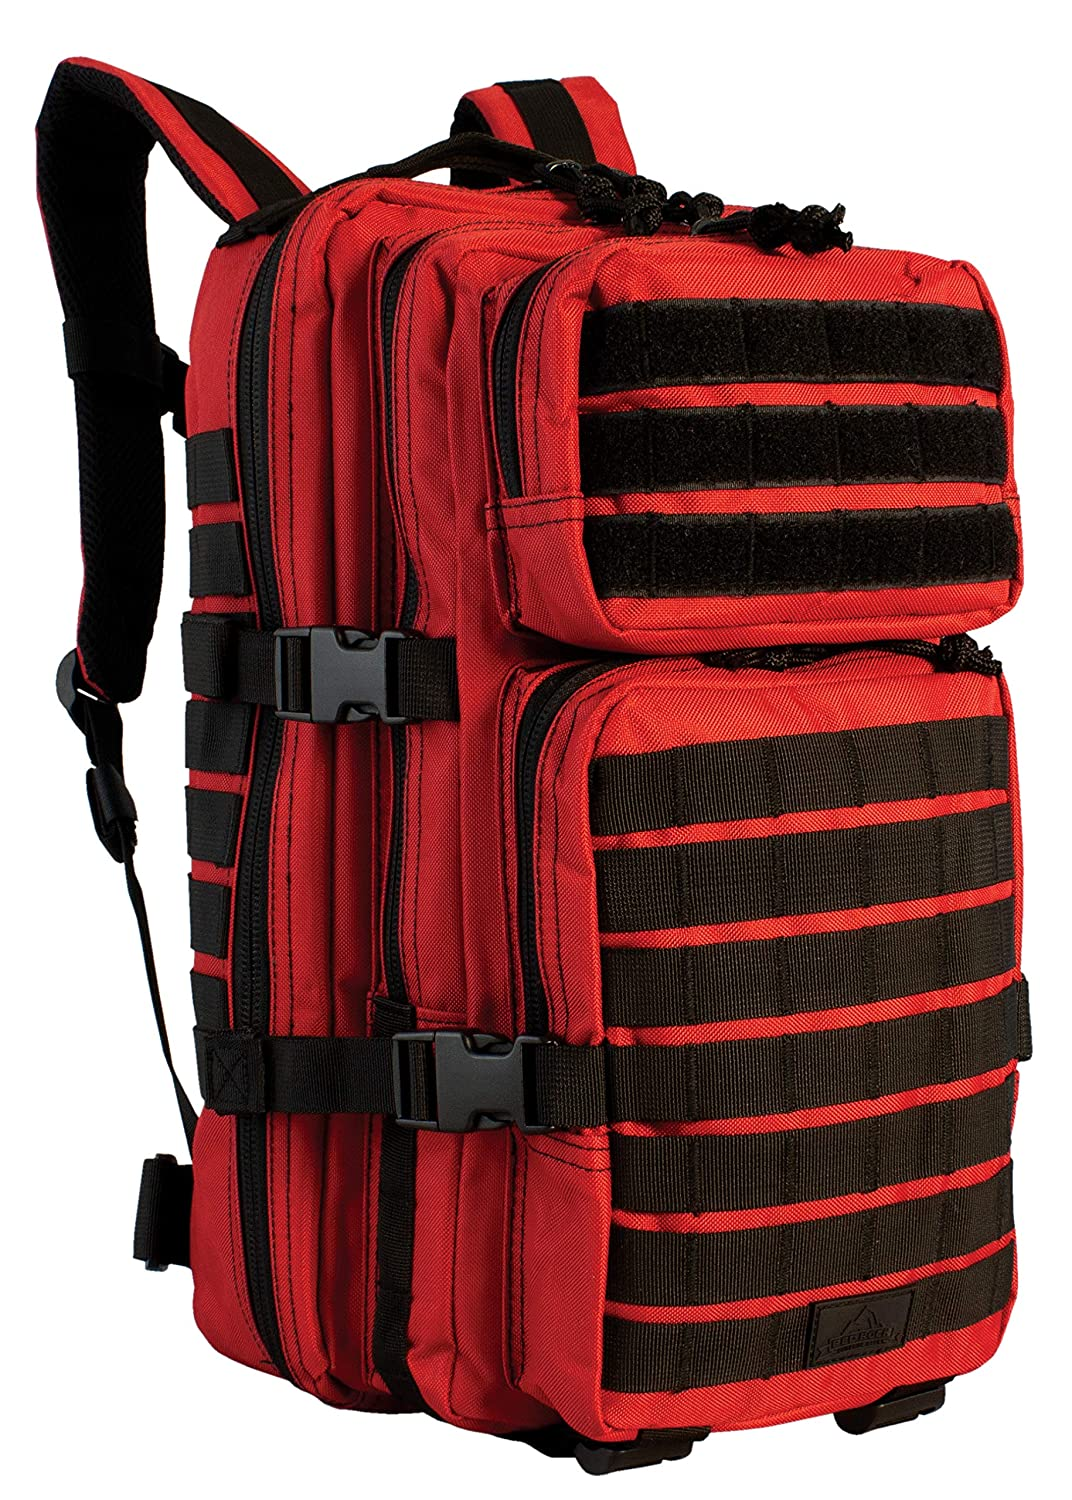 Red Rock Outdoor Gear Rebel Assault Pack  レッド/ブラック B00JSUL9MQ